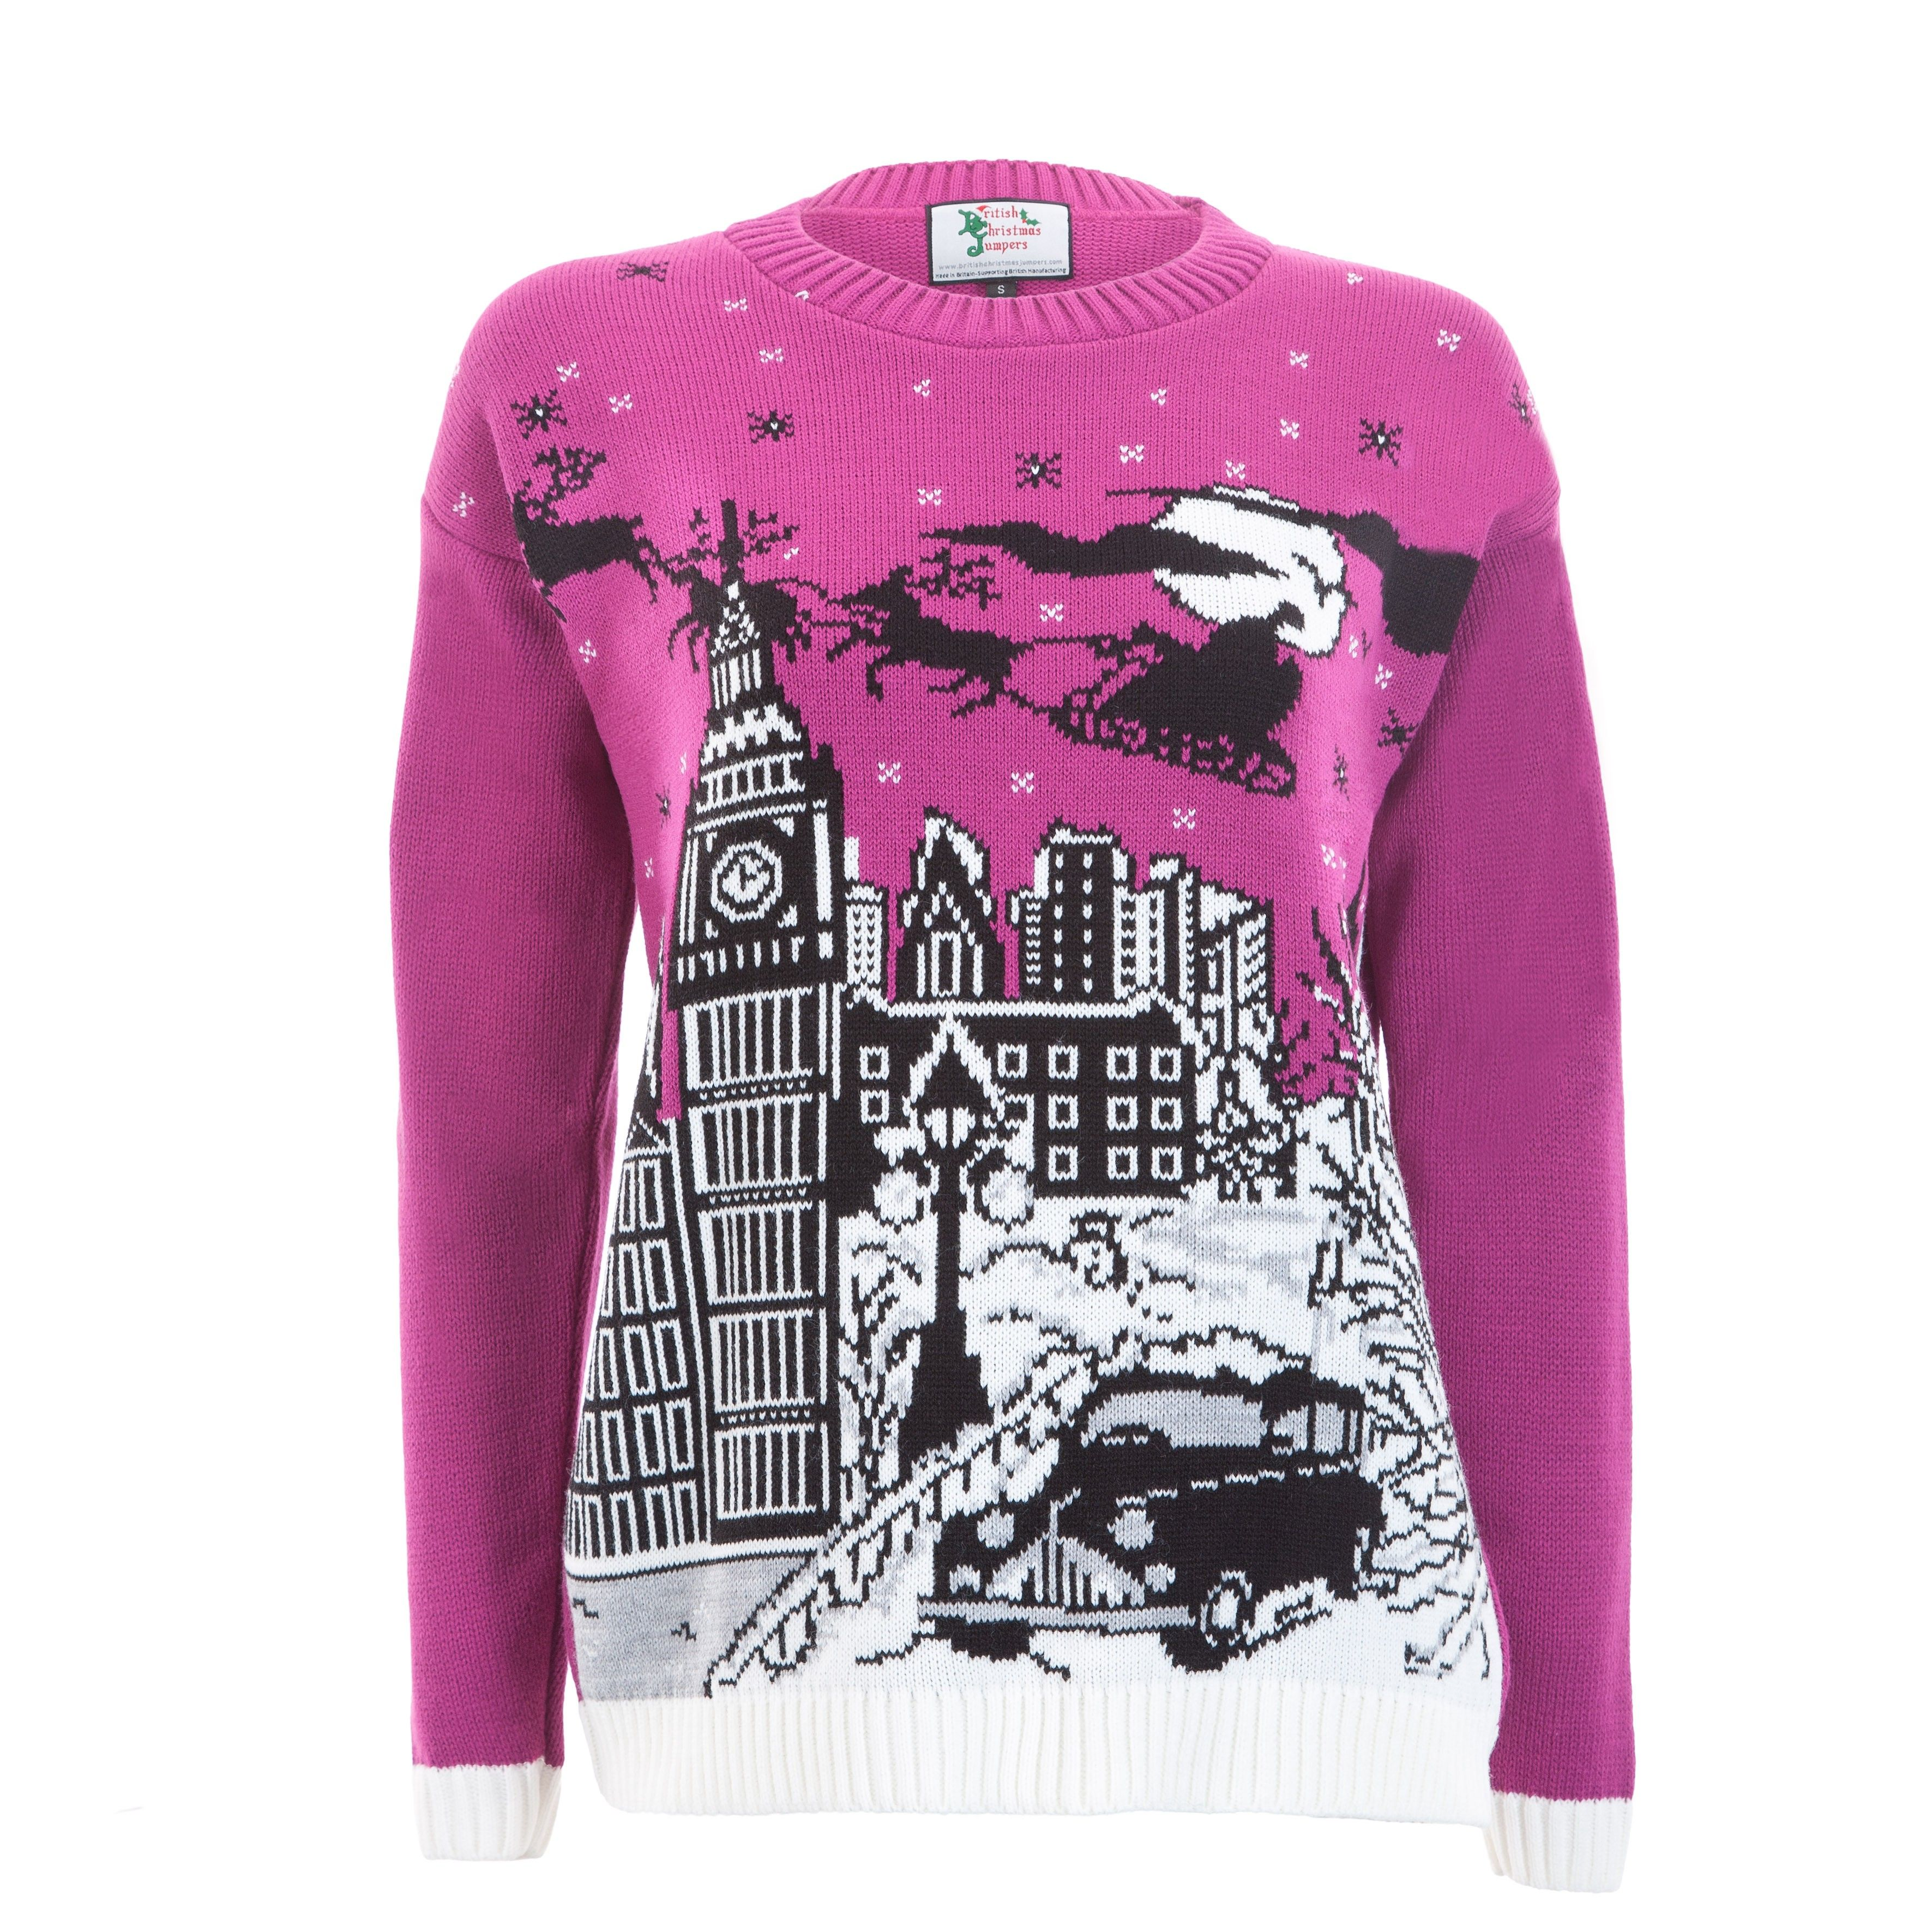 A London scene on this fabulous Christmas jumper. Womens